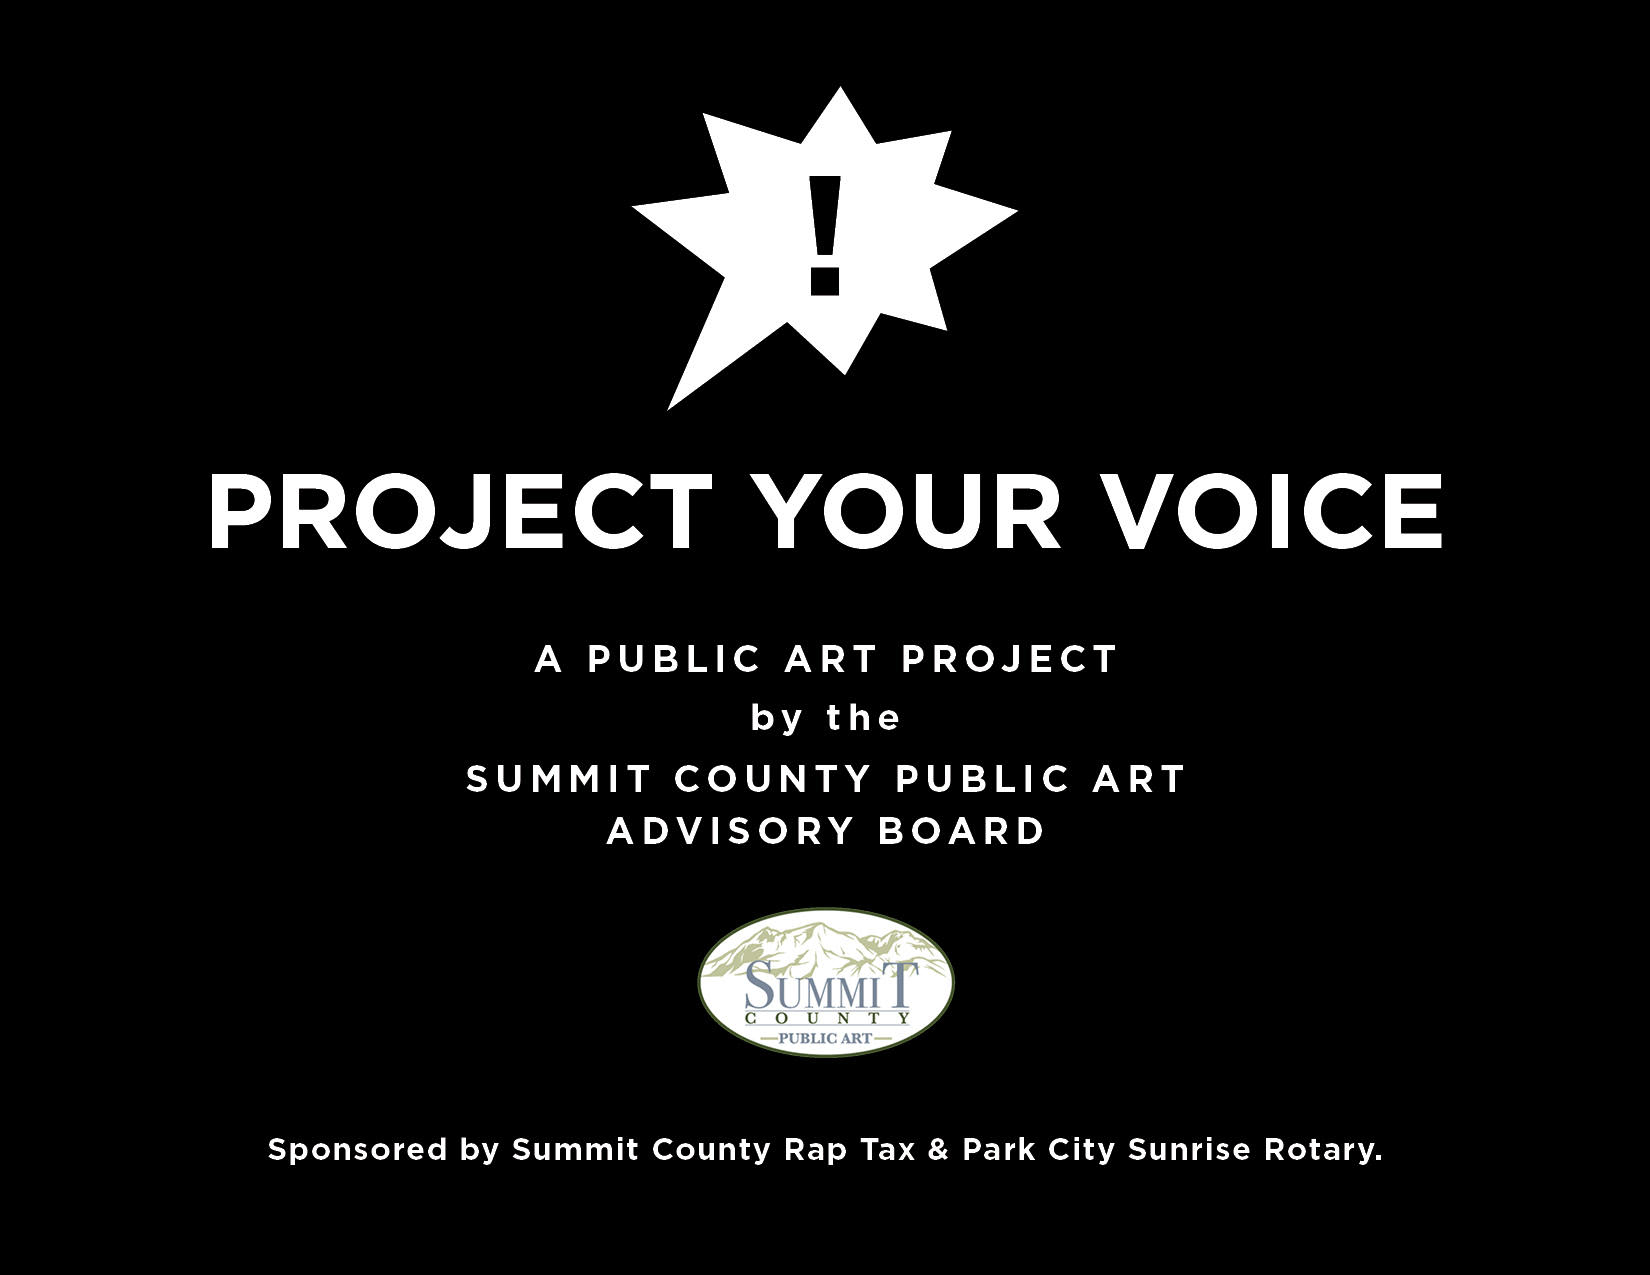 Project your Voice 2